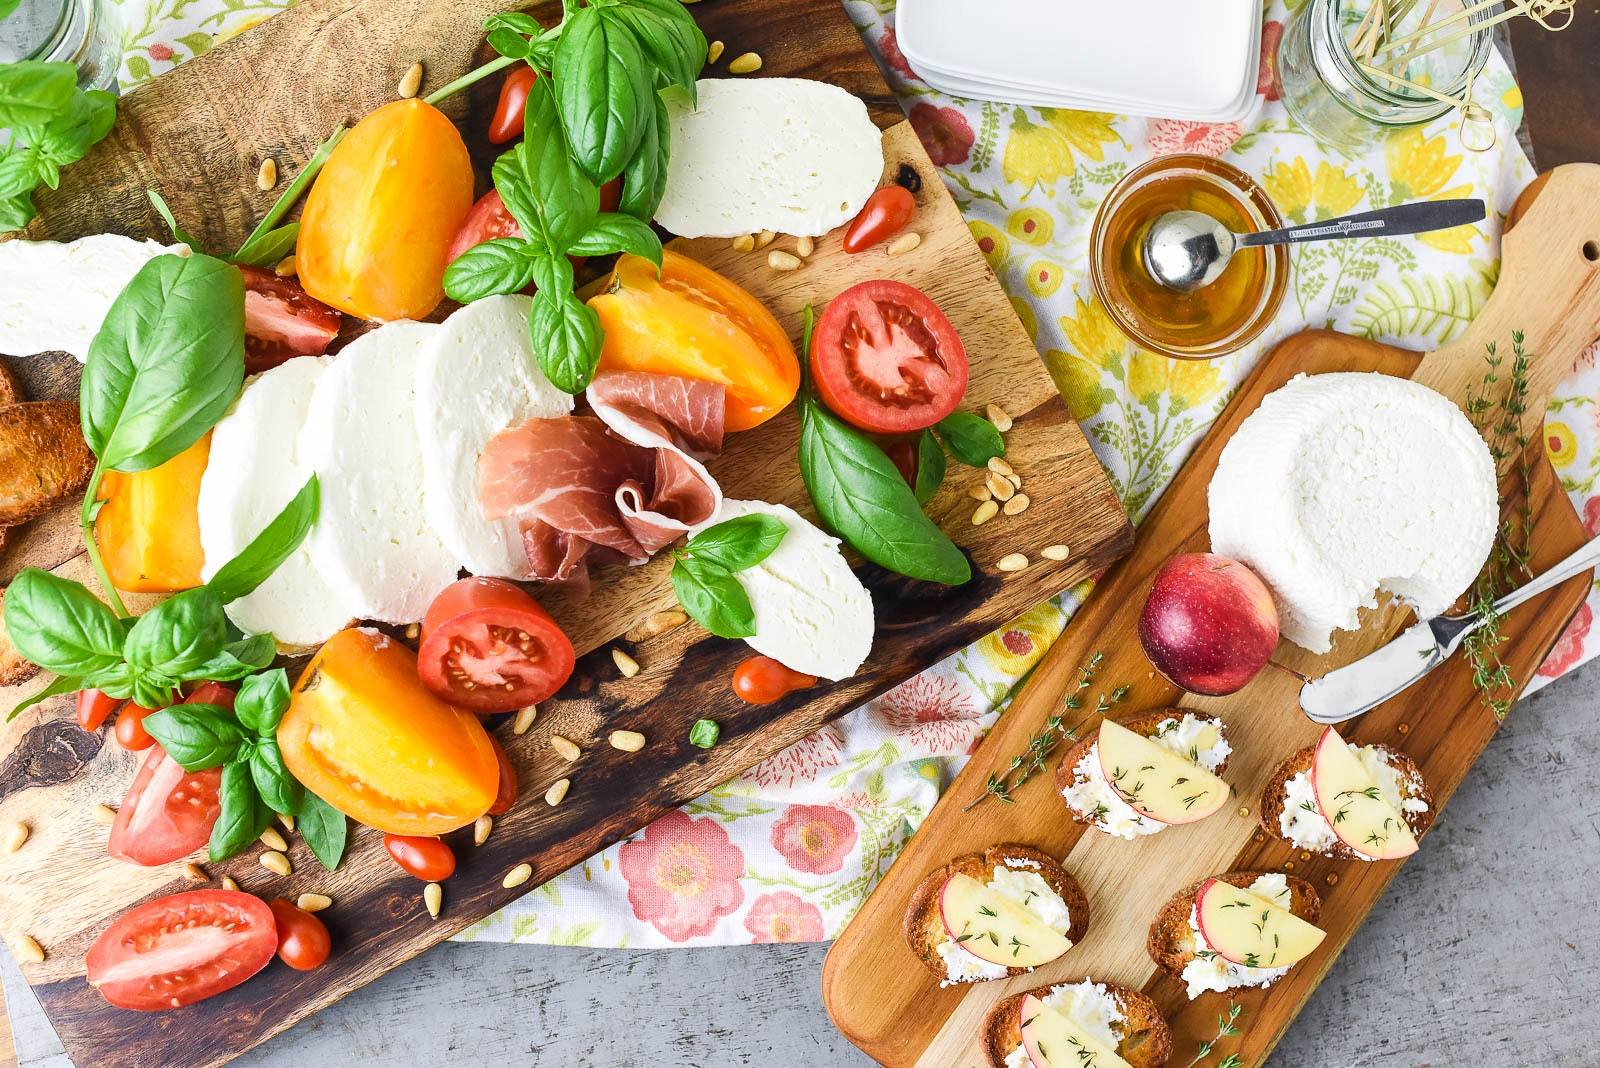 Impress Your Guests with Delicious Homemade Cheeses